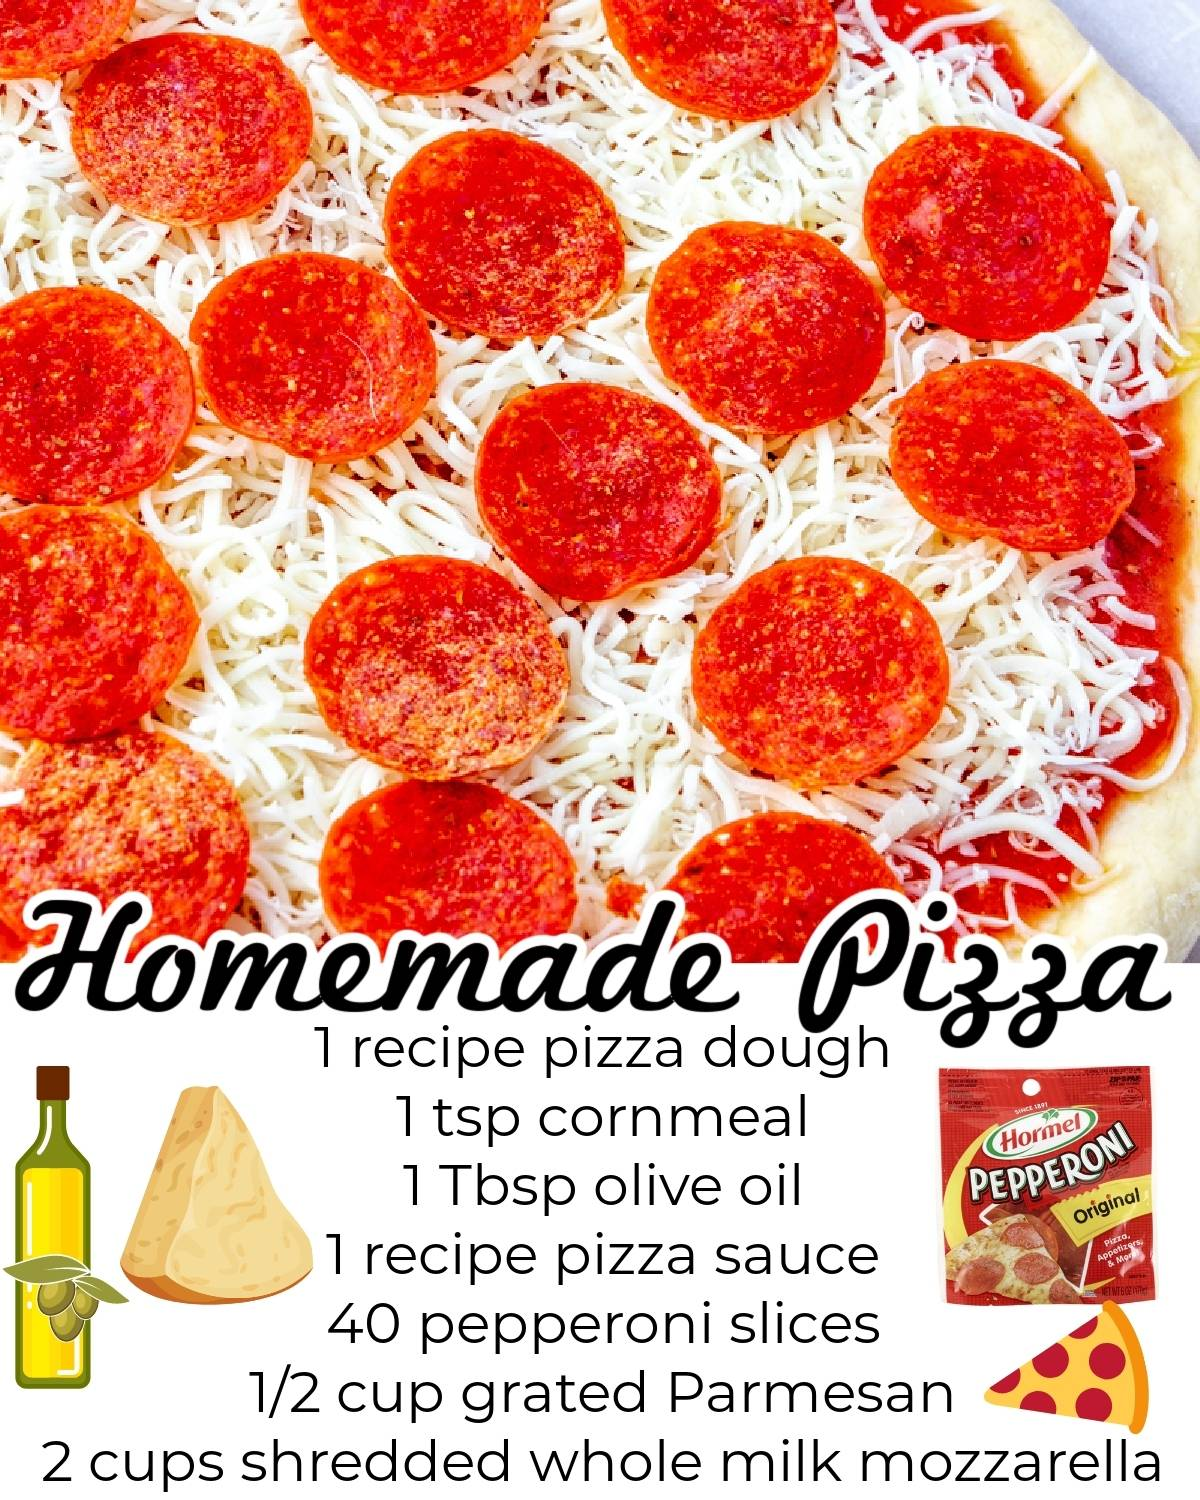 A picture of the uncooked pizza with text overlay listing the recipe ingredients.